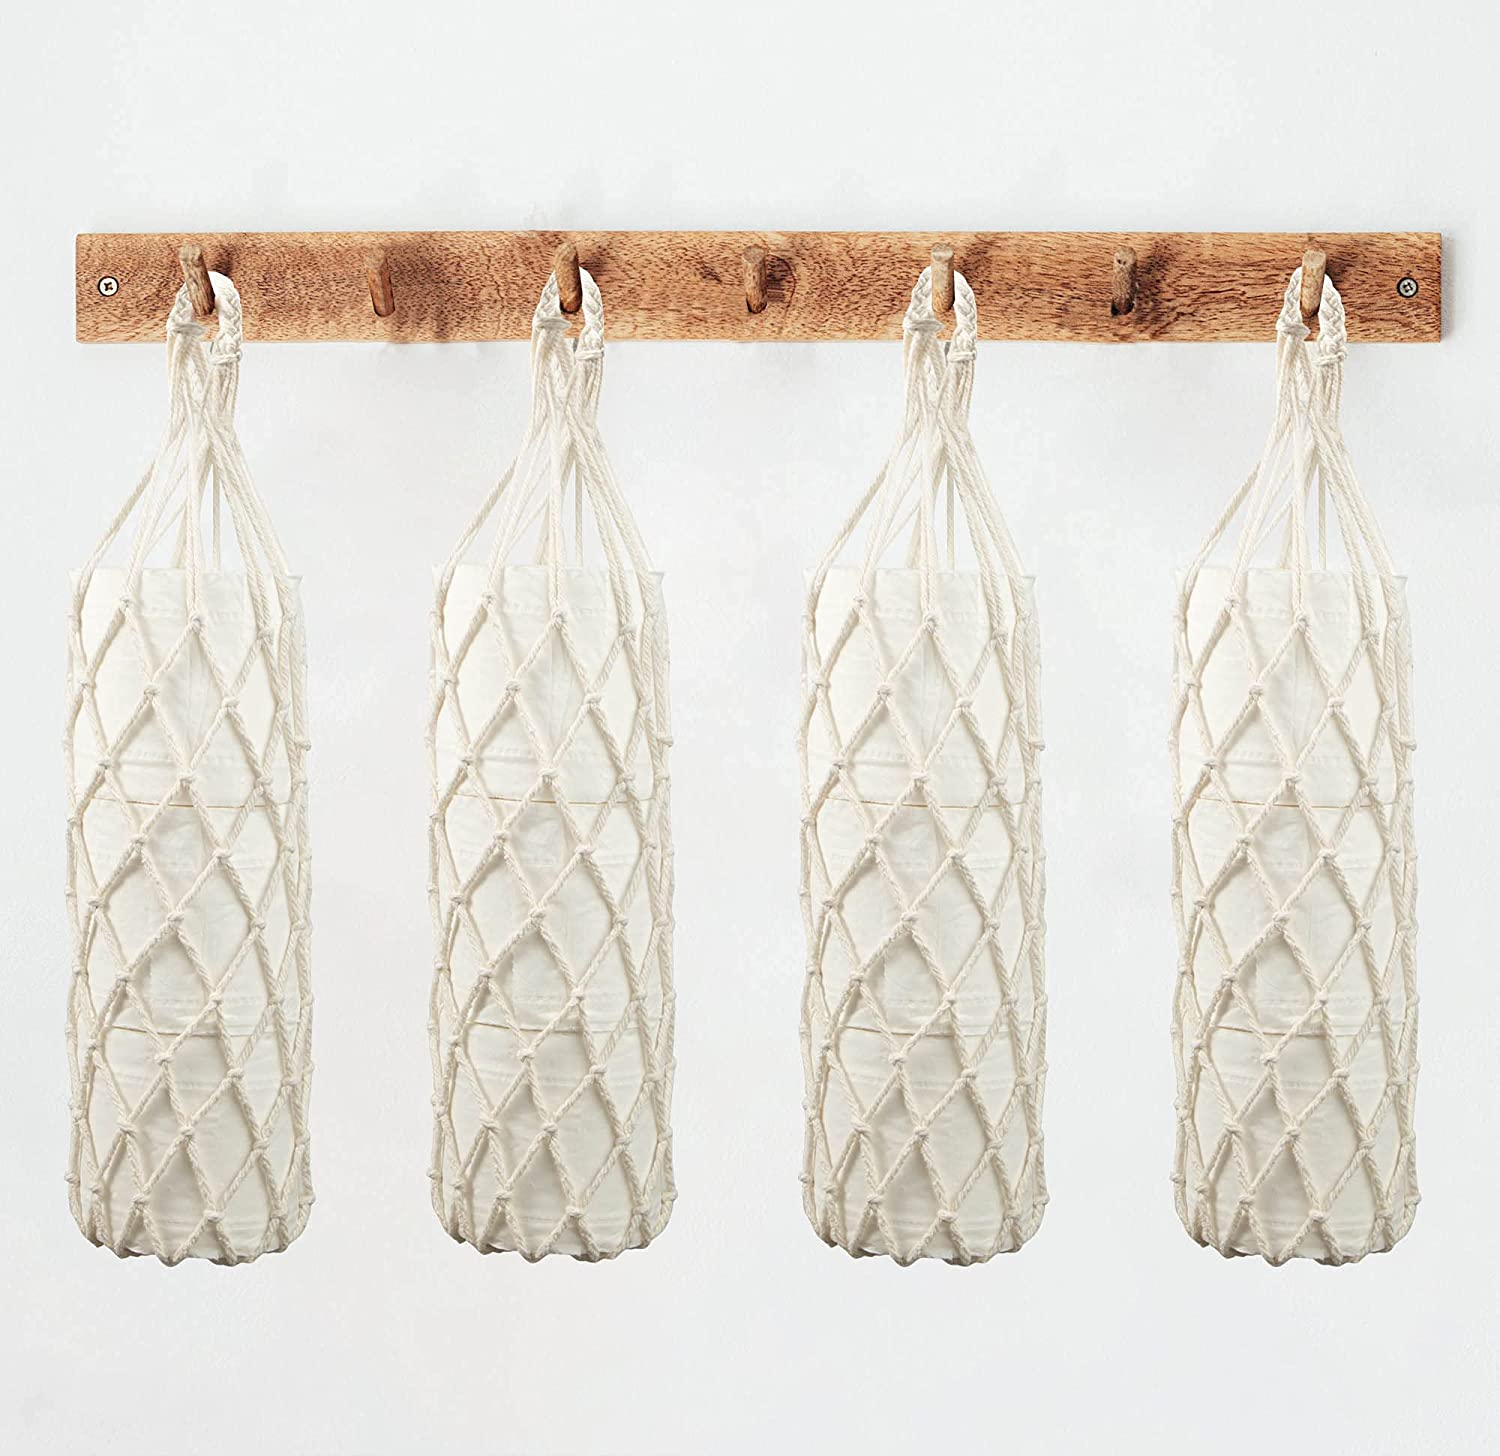 Hanging Boho Online limited product Toilet Paper Large special price !! Storage Holder 6Pack Net Bags for Fami